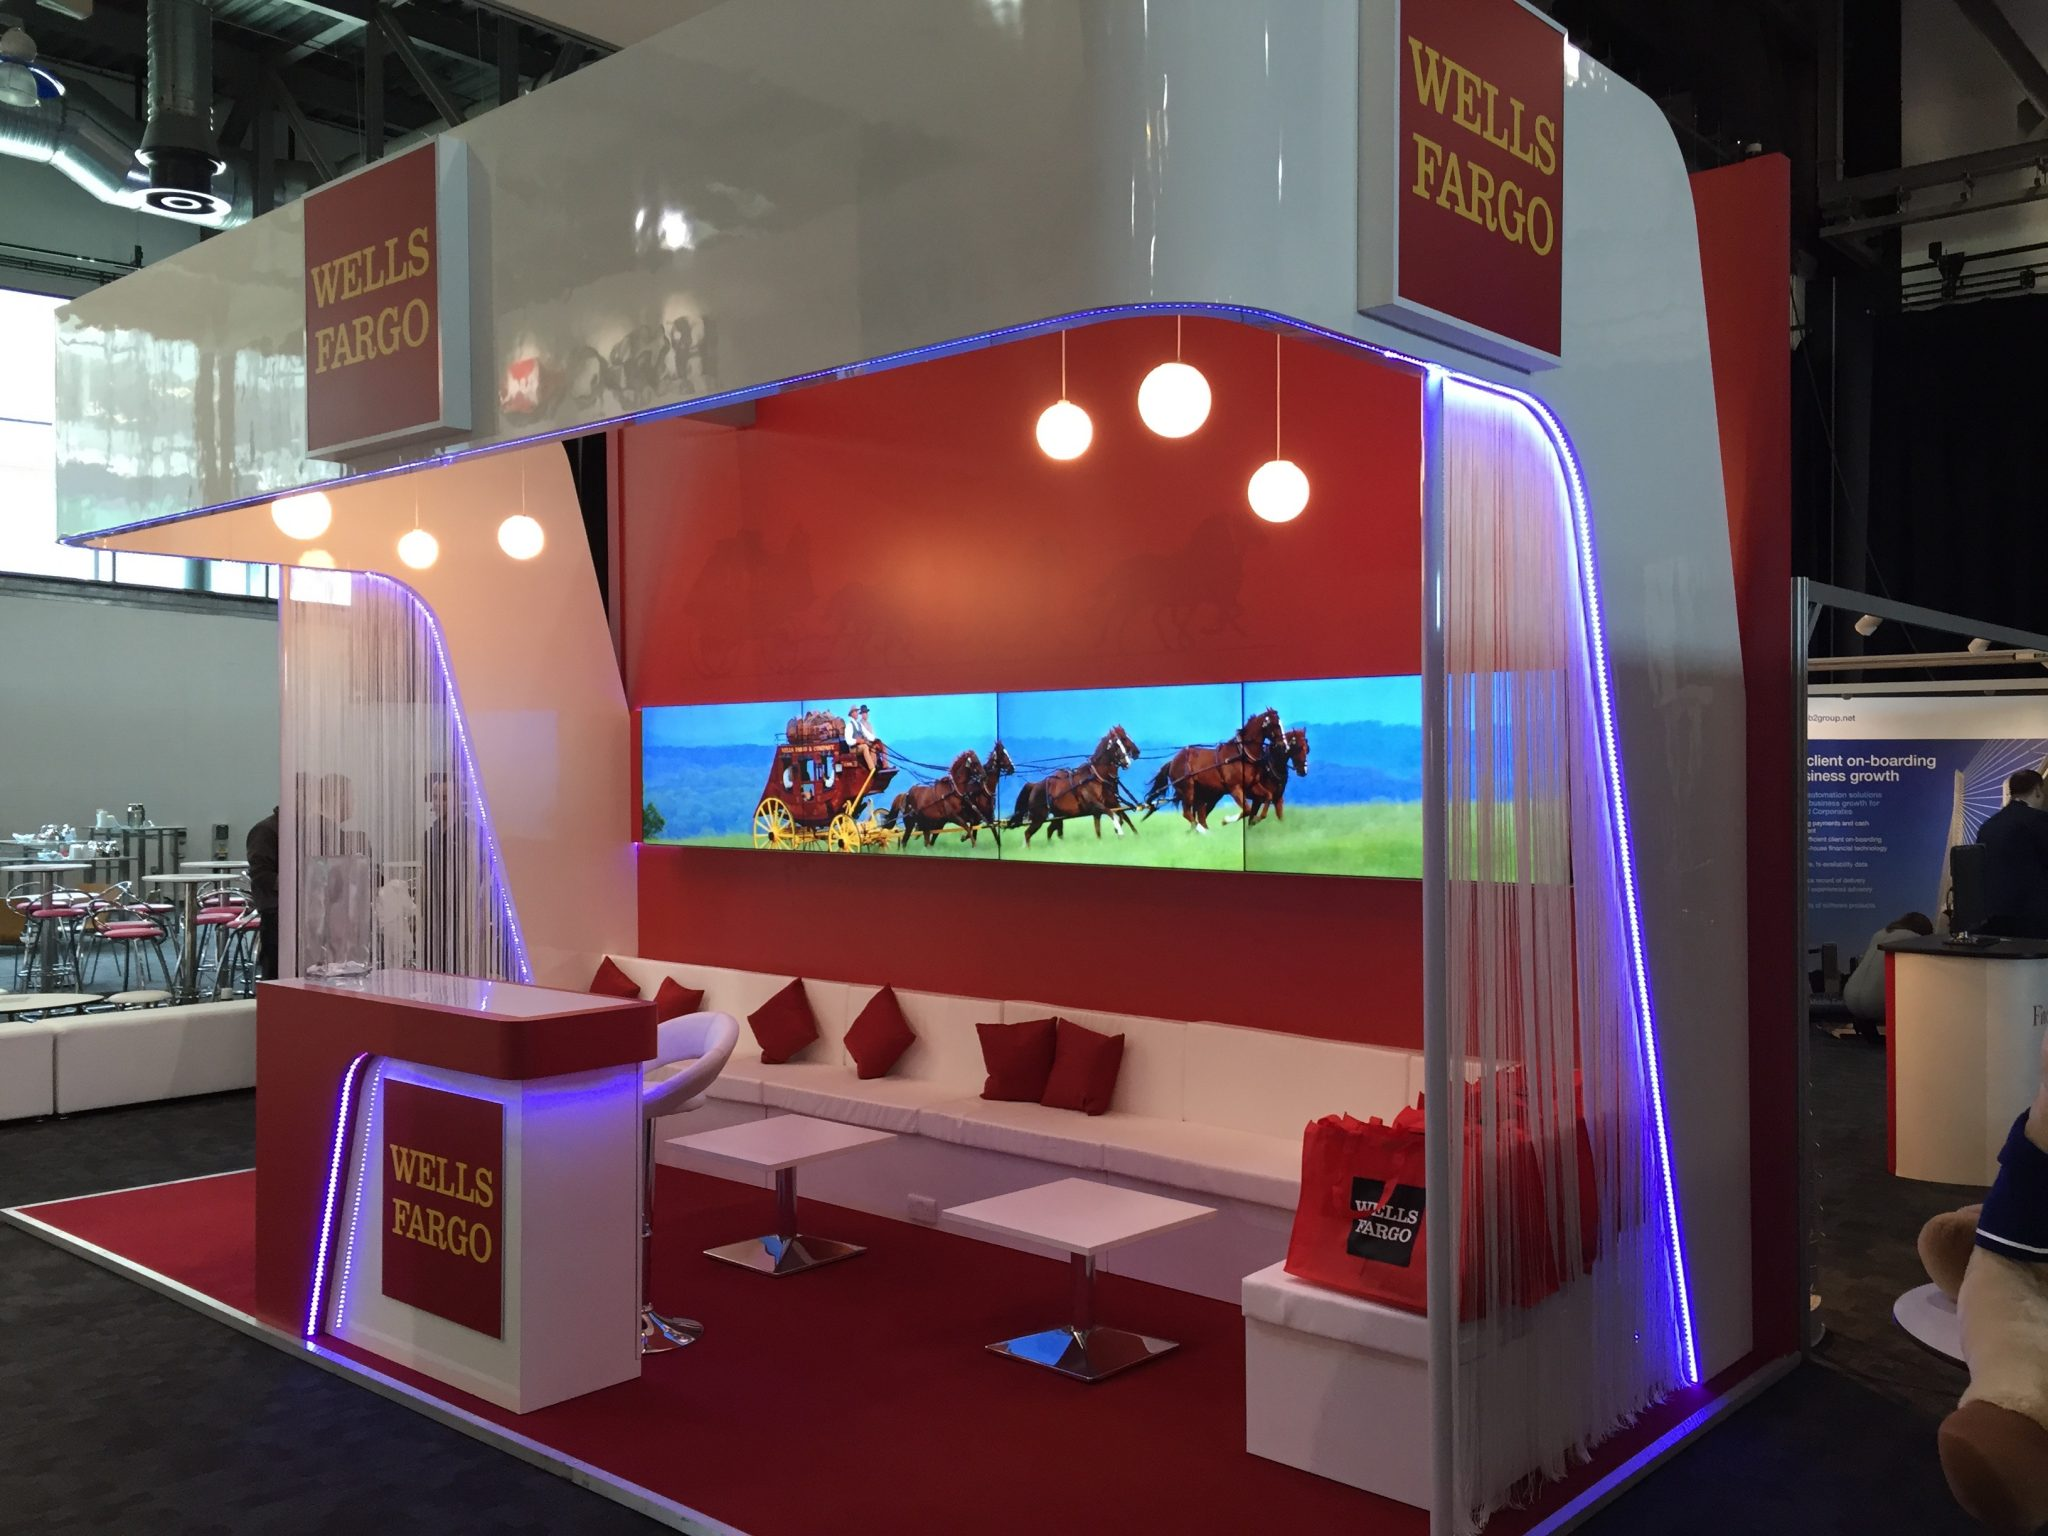 Exhibition Stand Design Companies Uk : Wells fargo at act the ice agency bespoke exhibition